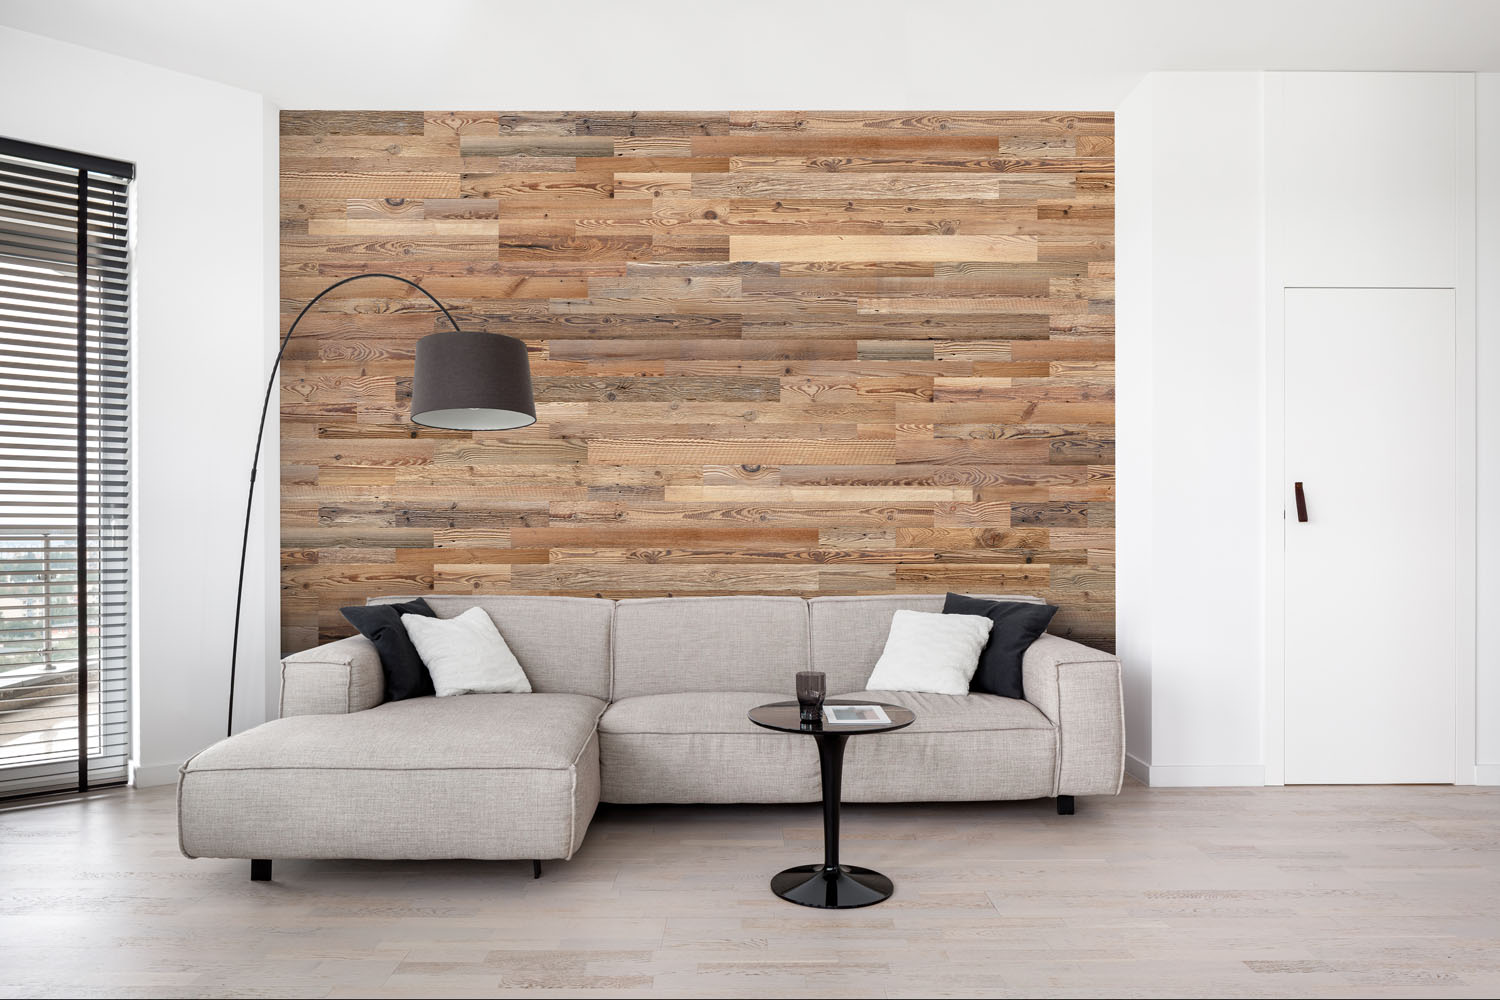 wooden wall panels on wall behind couch